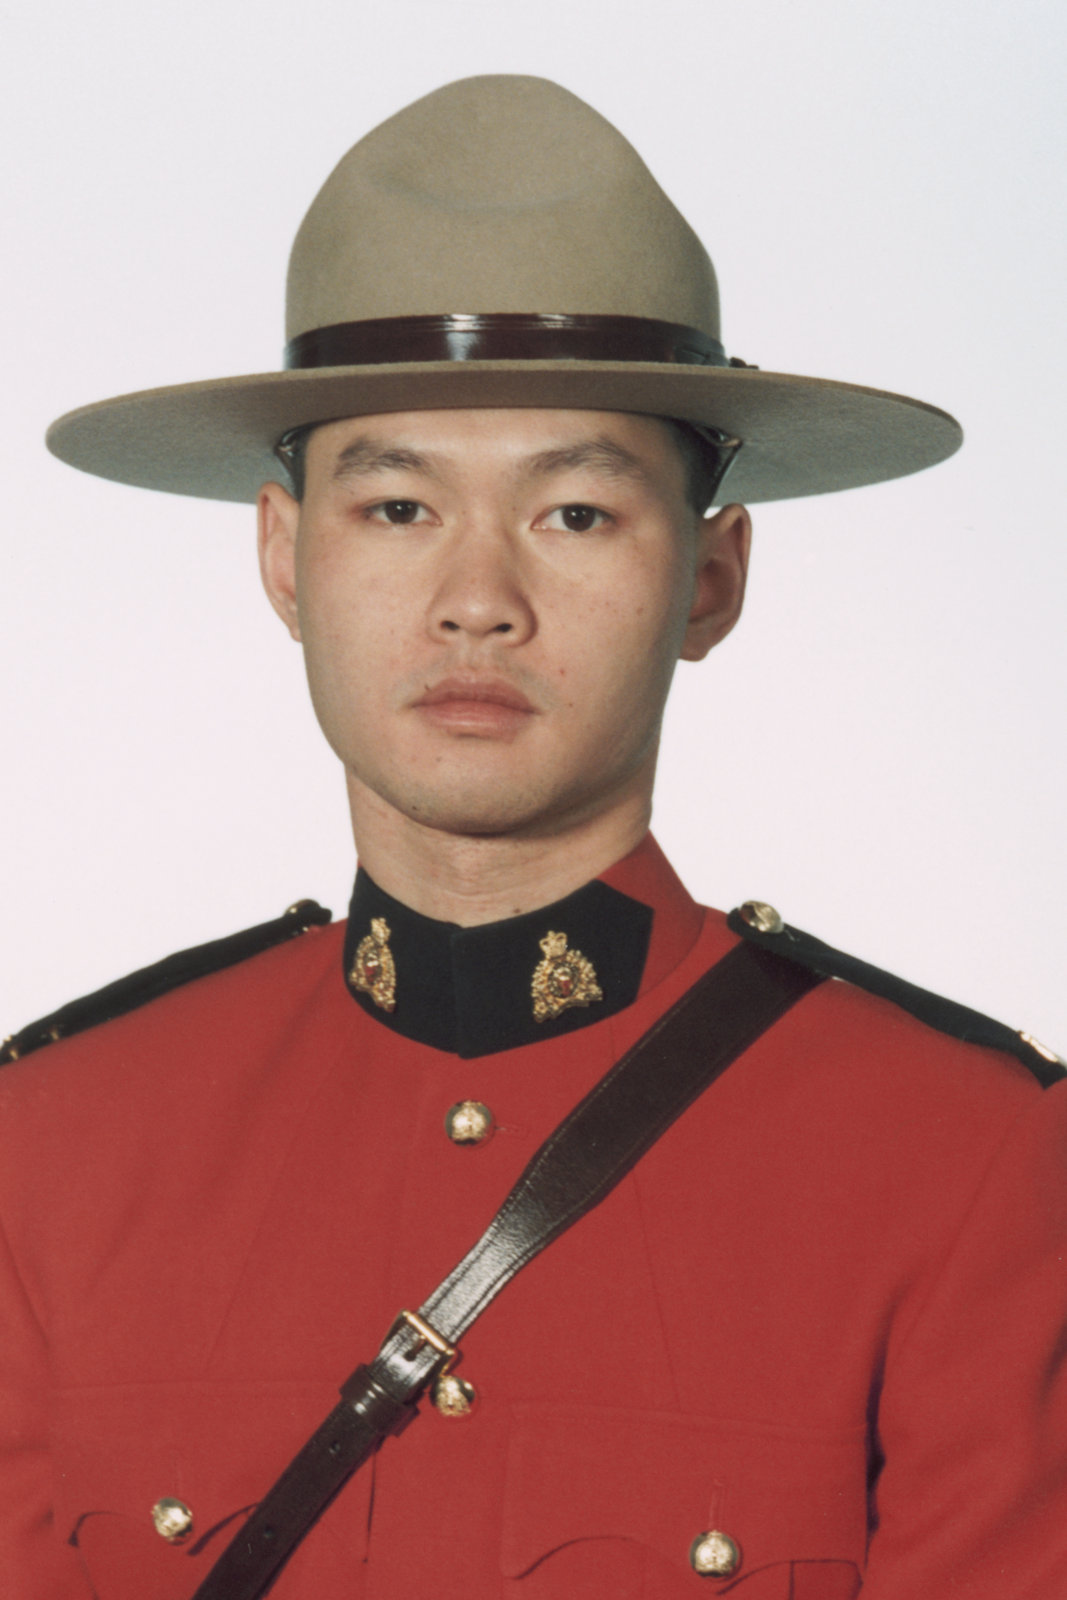 Constable Jimmy Ng– © Her Majesty the Queen in Right of Canada as represented by the Royal Canadian Mounted Police